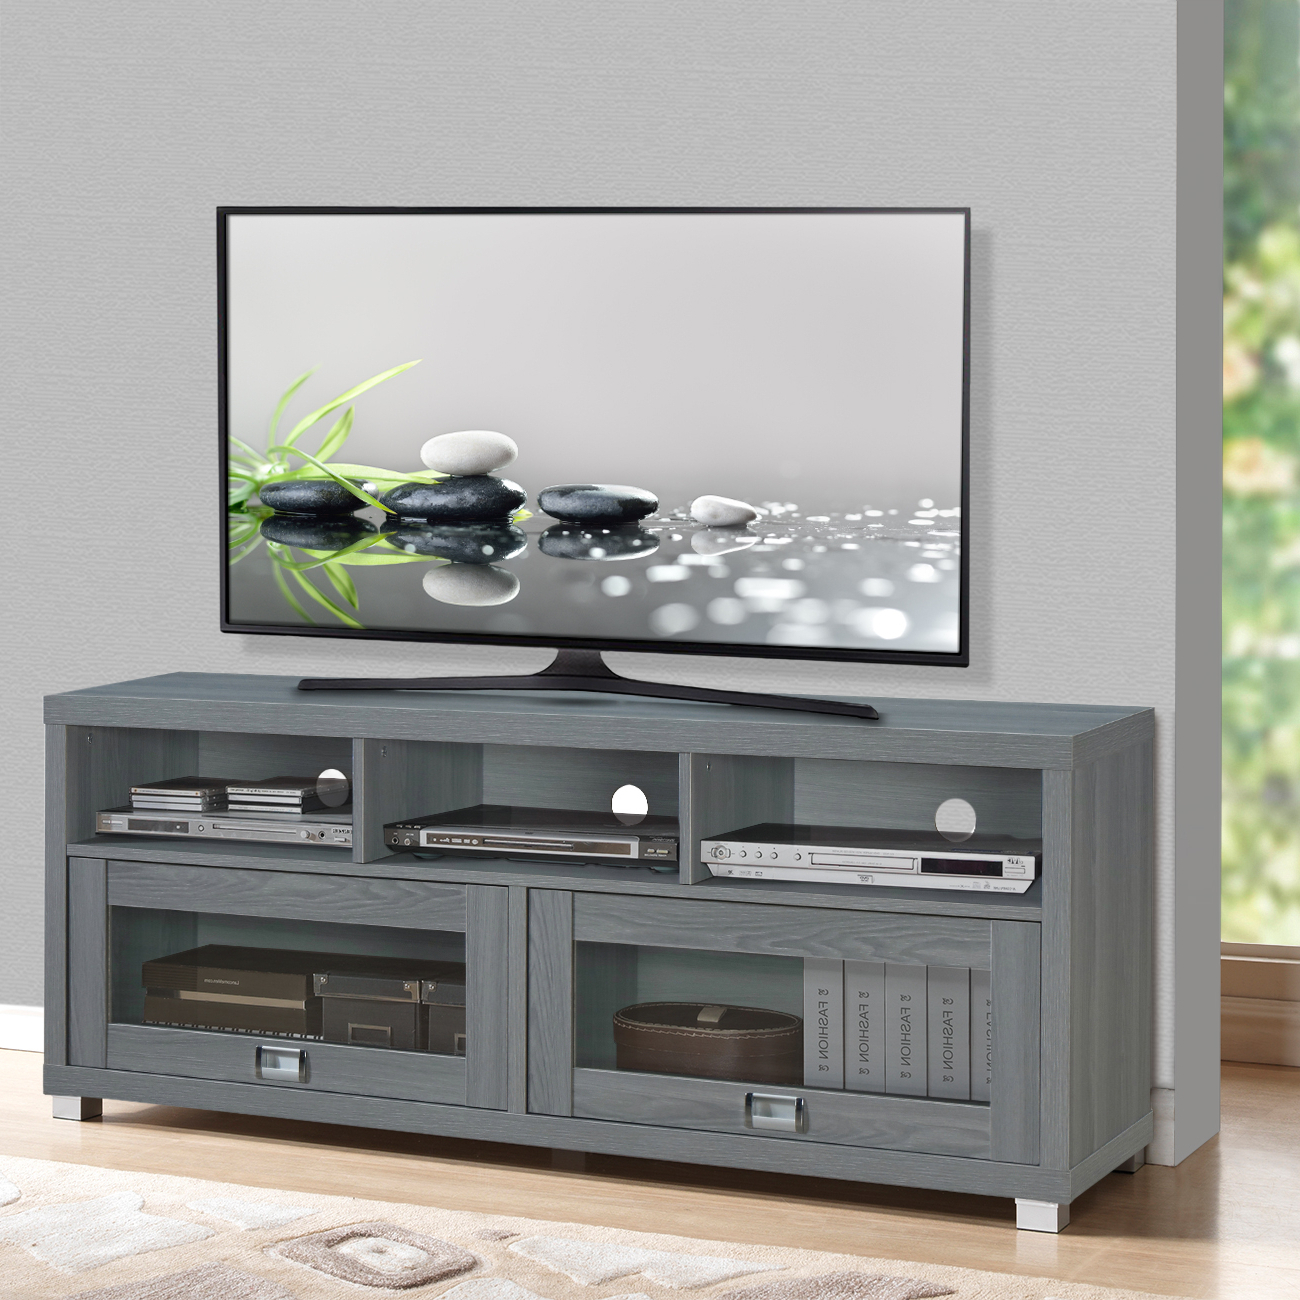 """Flat Screen Tv Stand Up To 75 Inch 50 55 60 65 70 55in Regarding Virginia Tv Stands For Tvs Up To 50"""" (View 15 of 20)"""